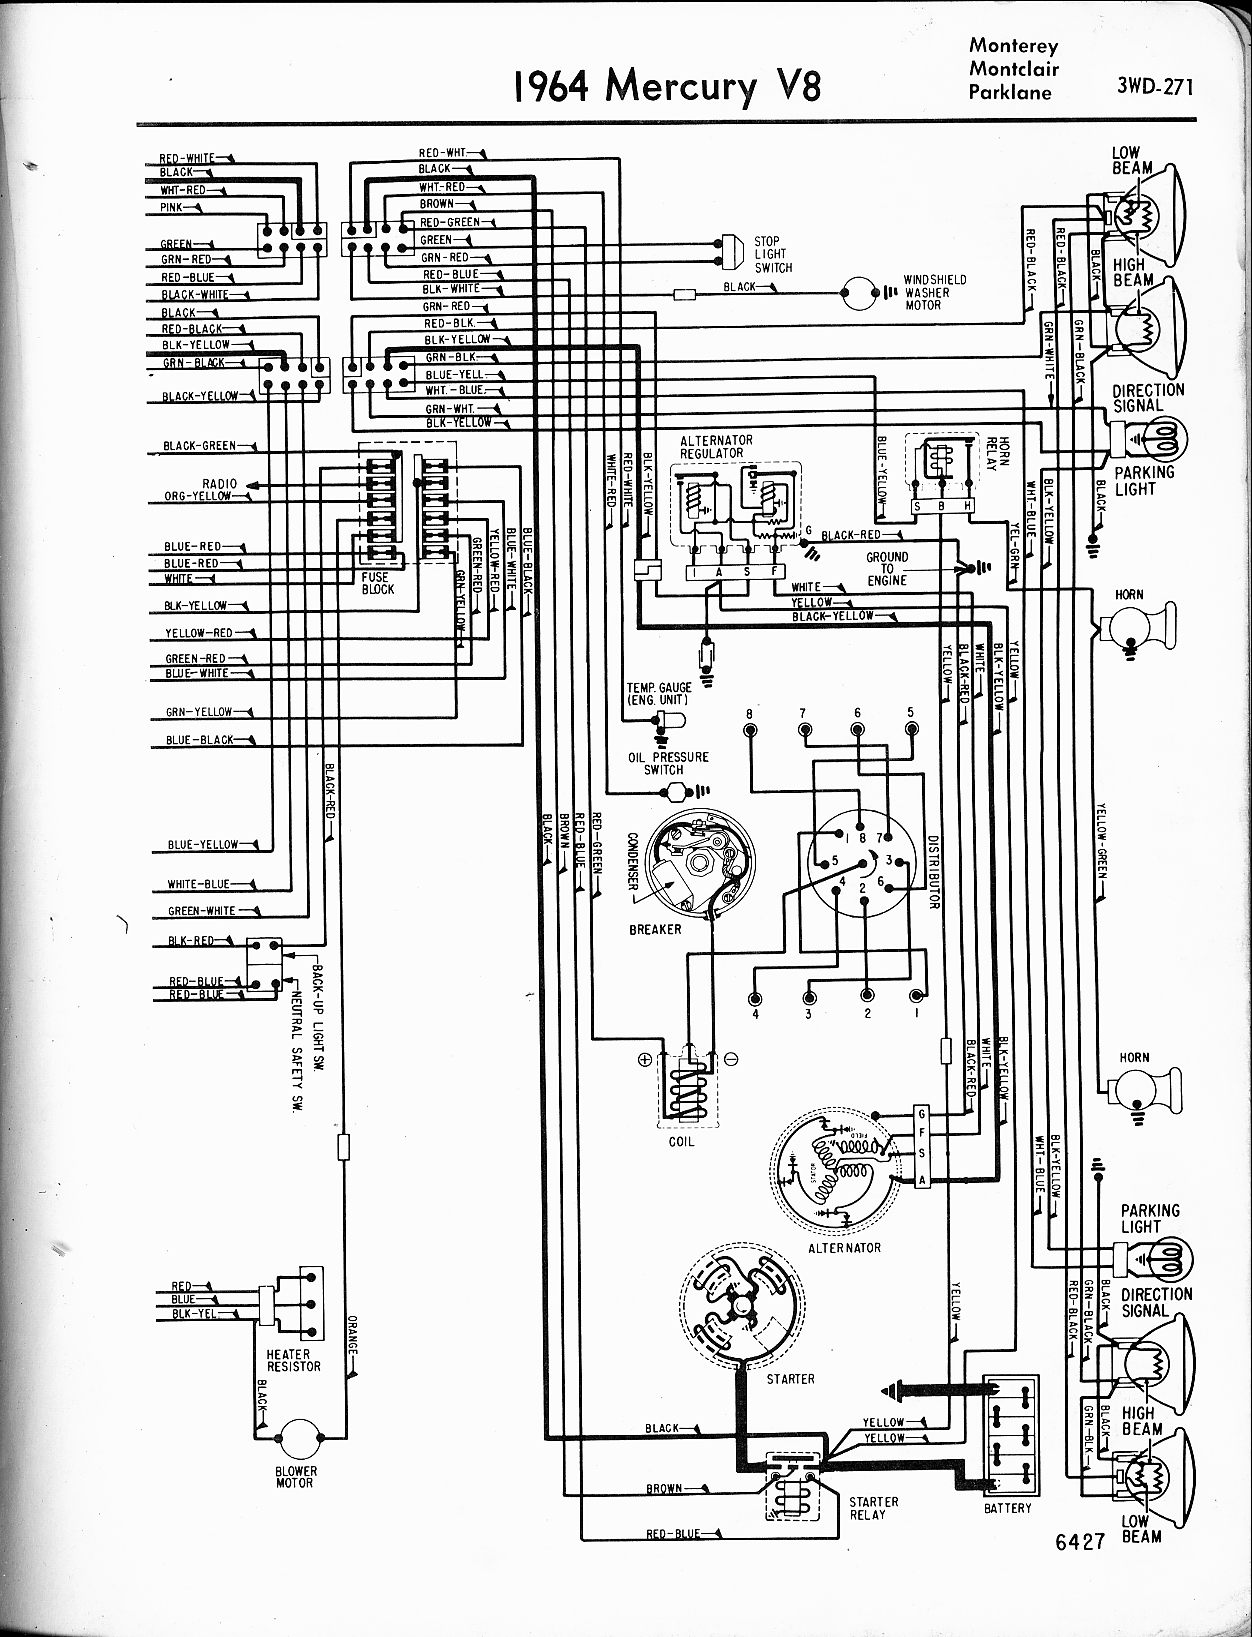 MWire5765 271 mercury wiring diagrams the old car manual project 1965 thunderbird alternator wiring diagram at crackthecode.co